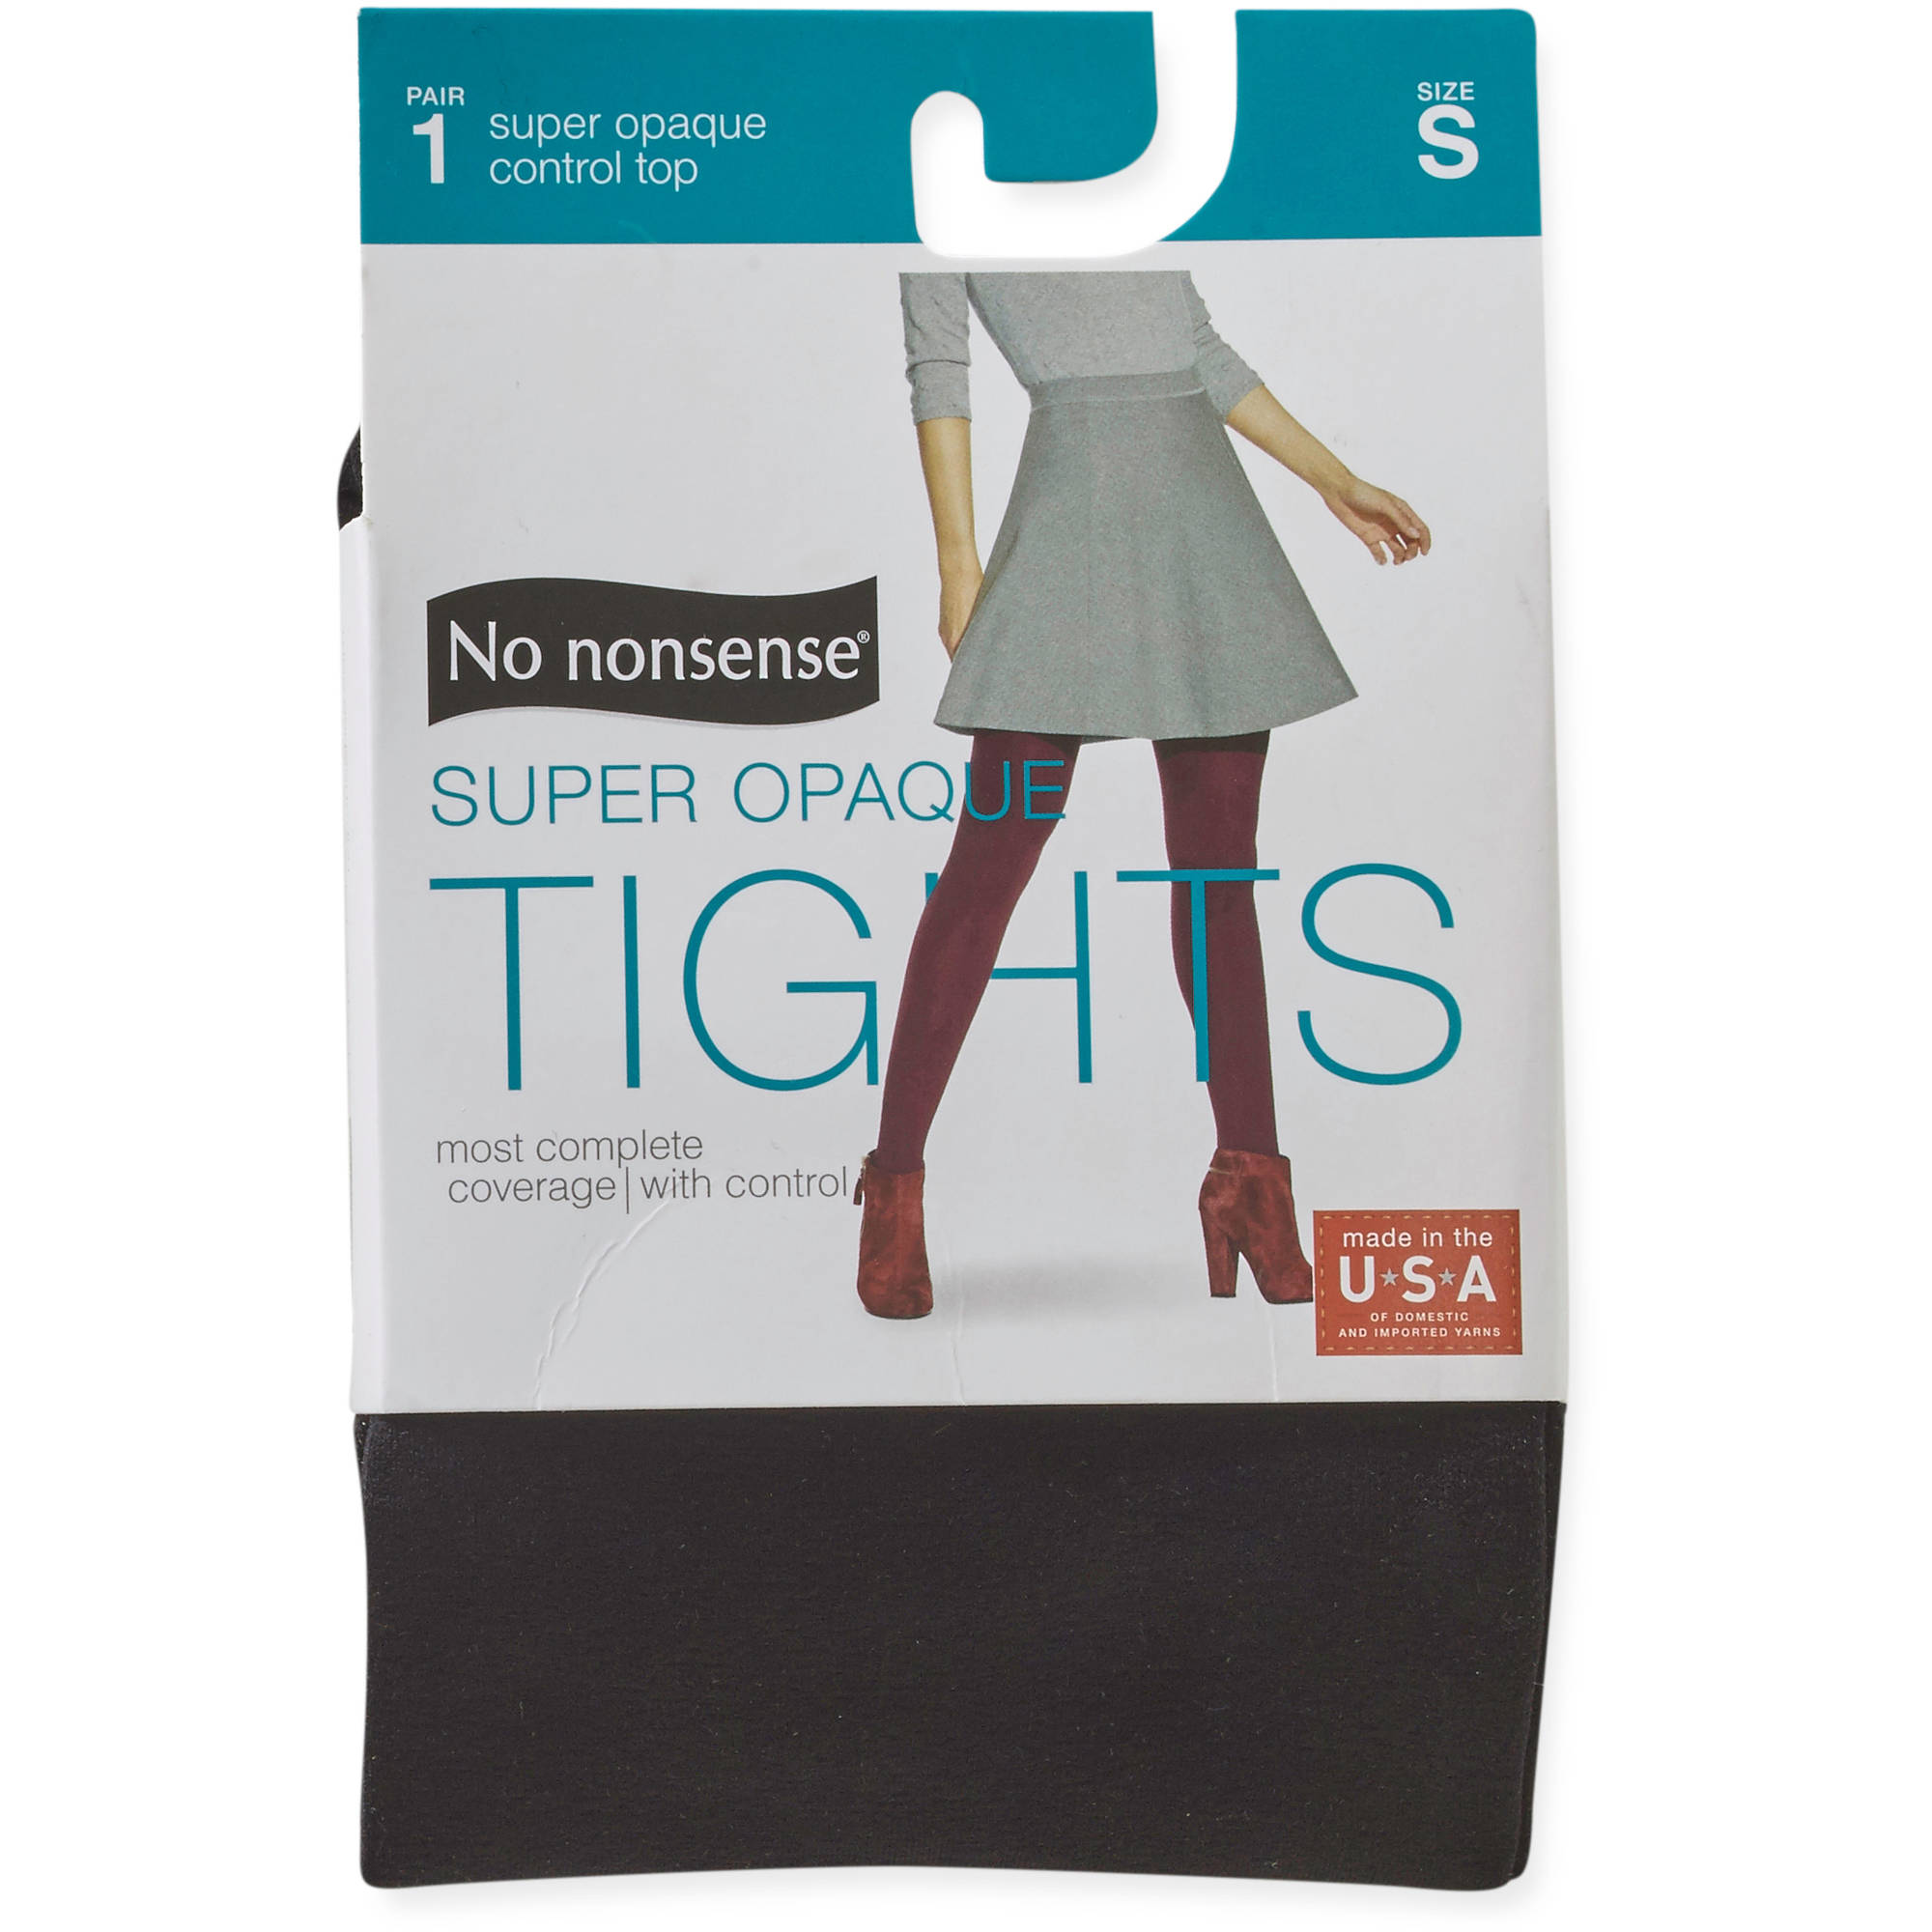 No nonsense Women's Super Opaque Control Top Tights